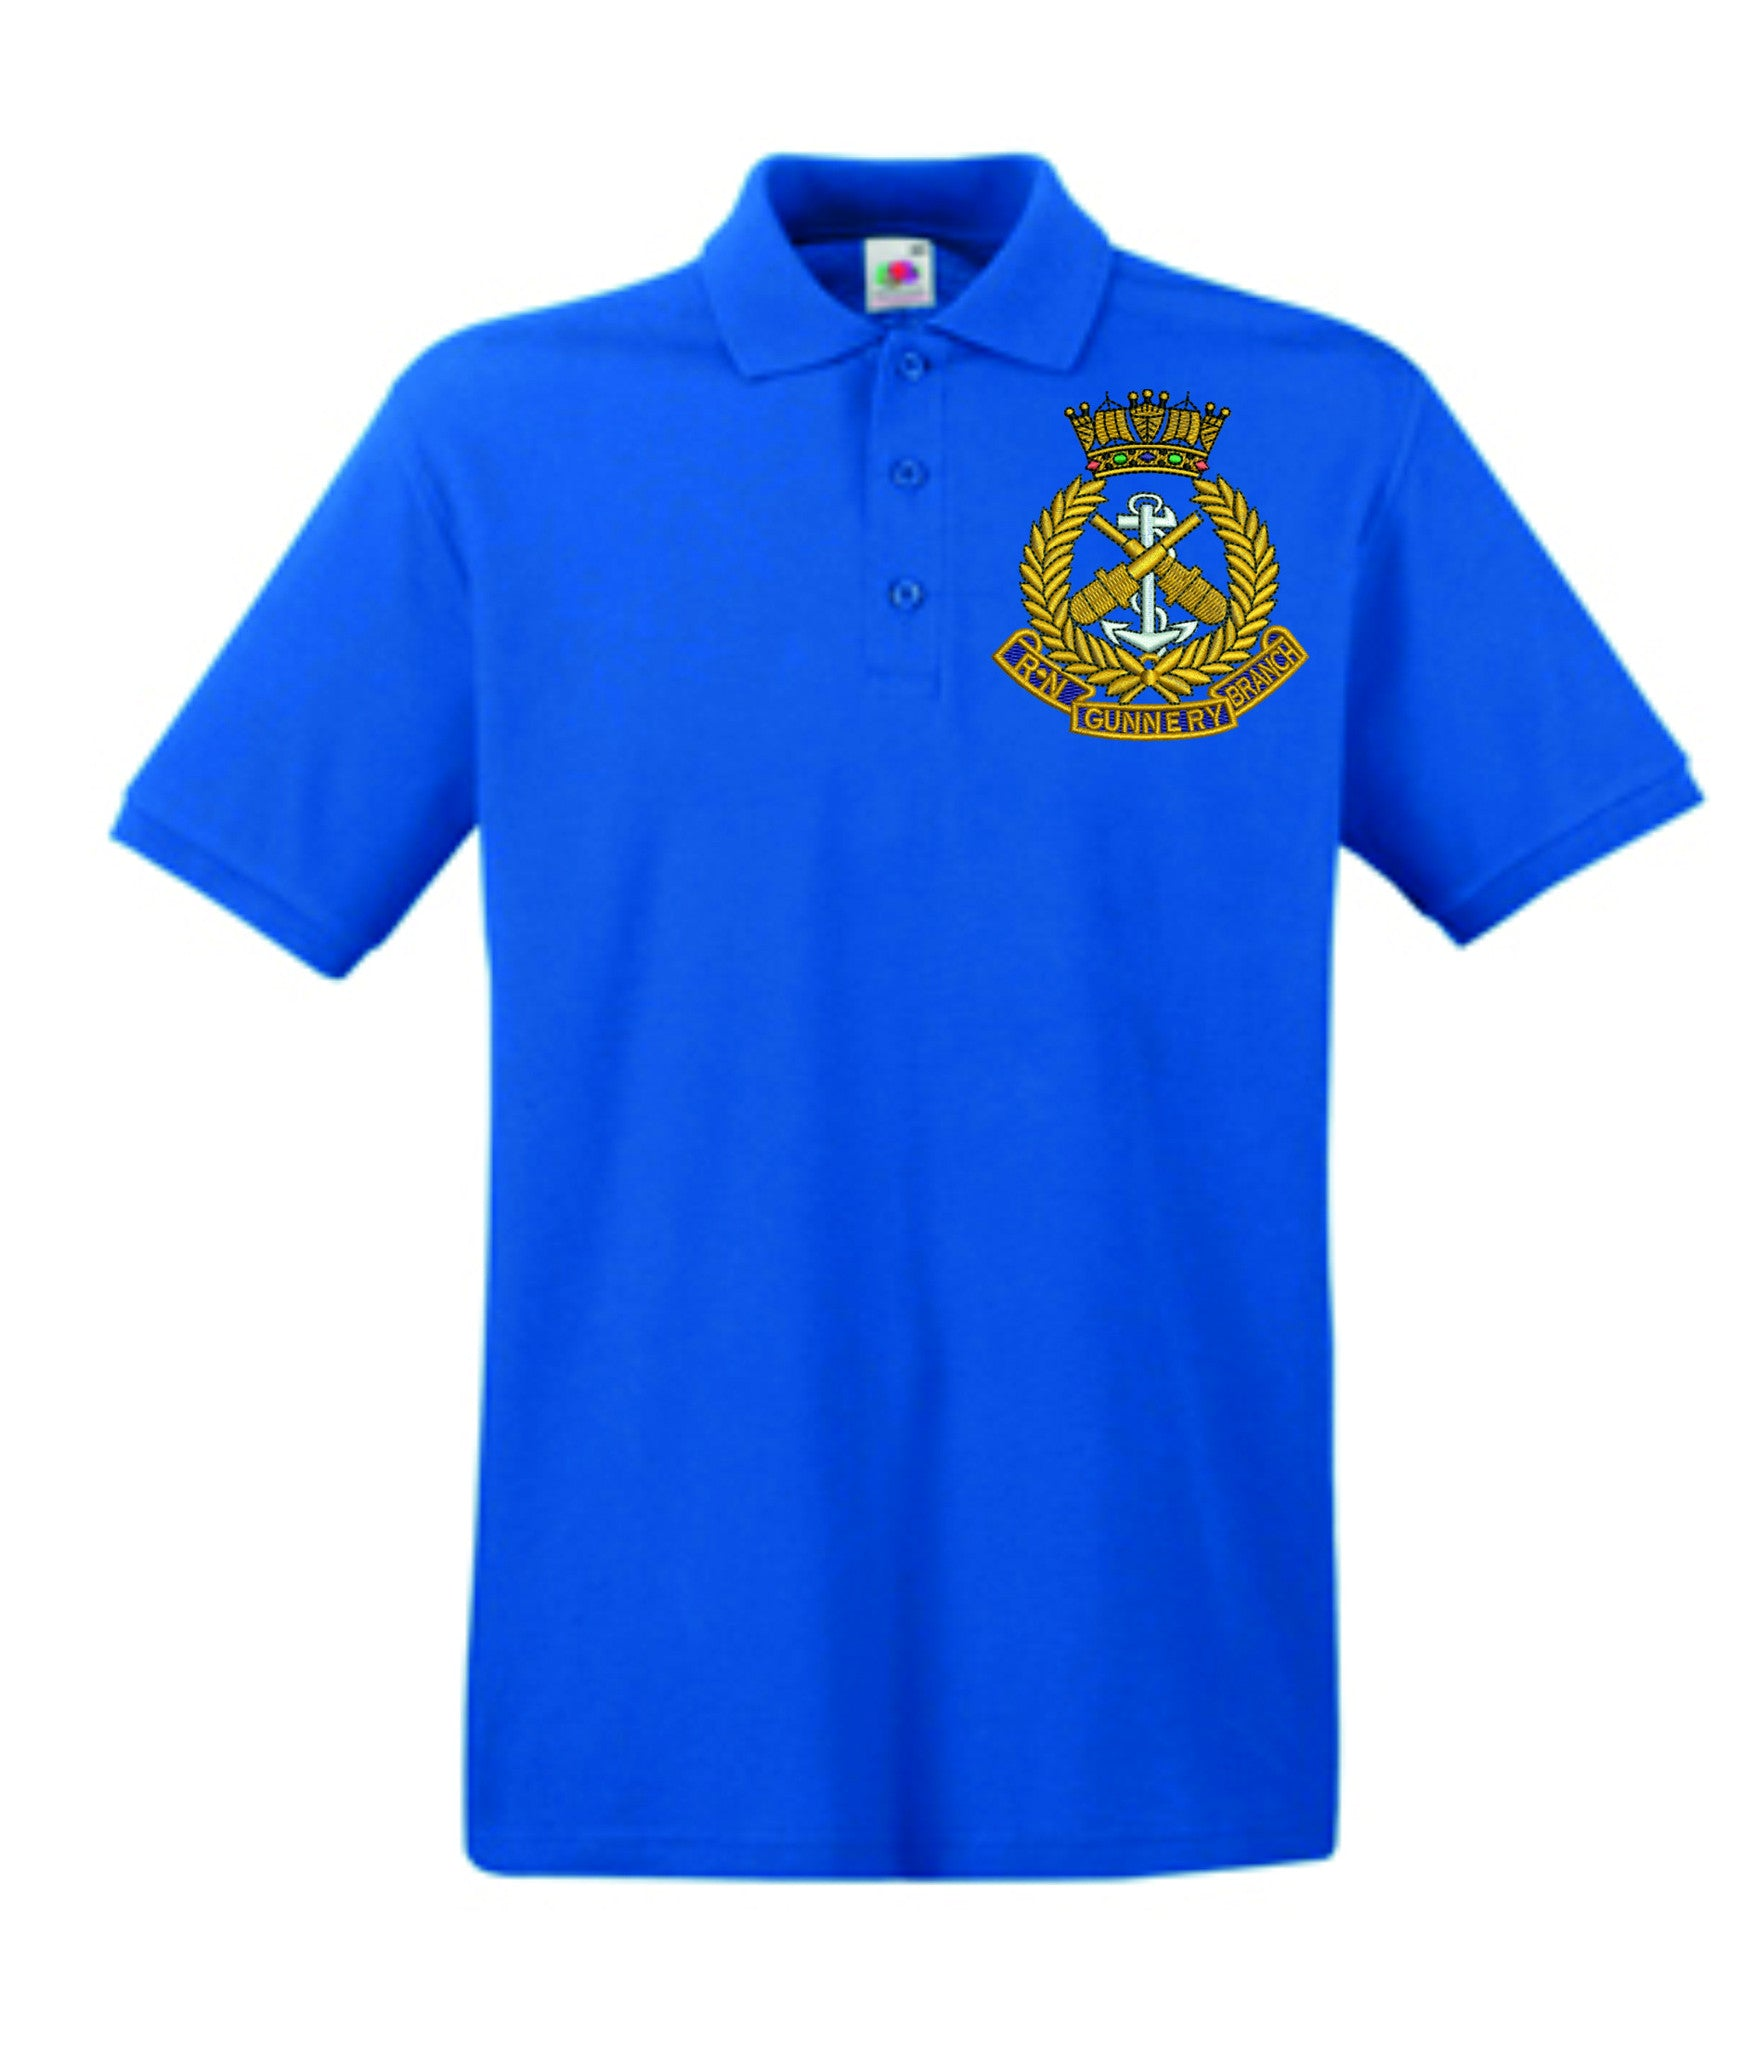 Royal Navy Gunnery Branch Polo Shirt